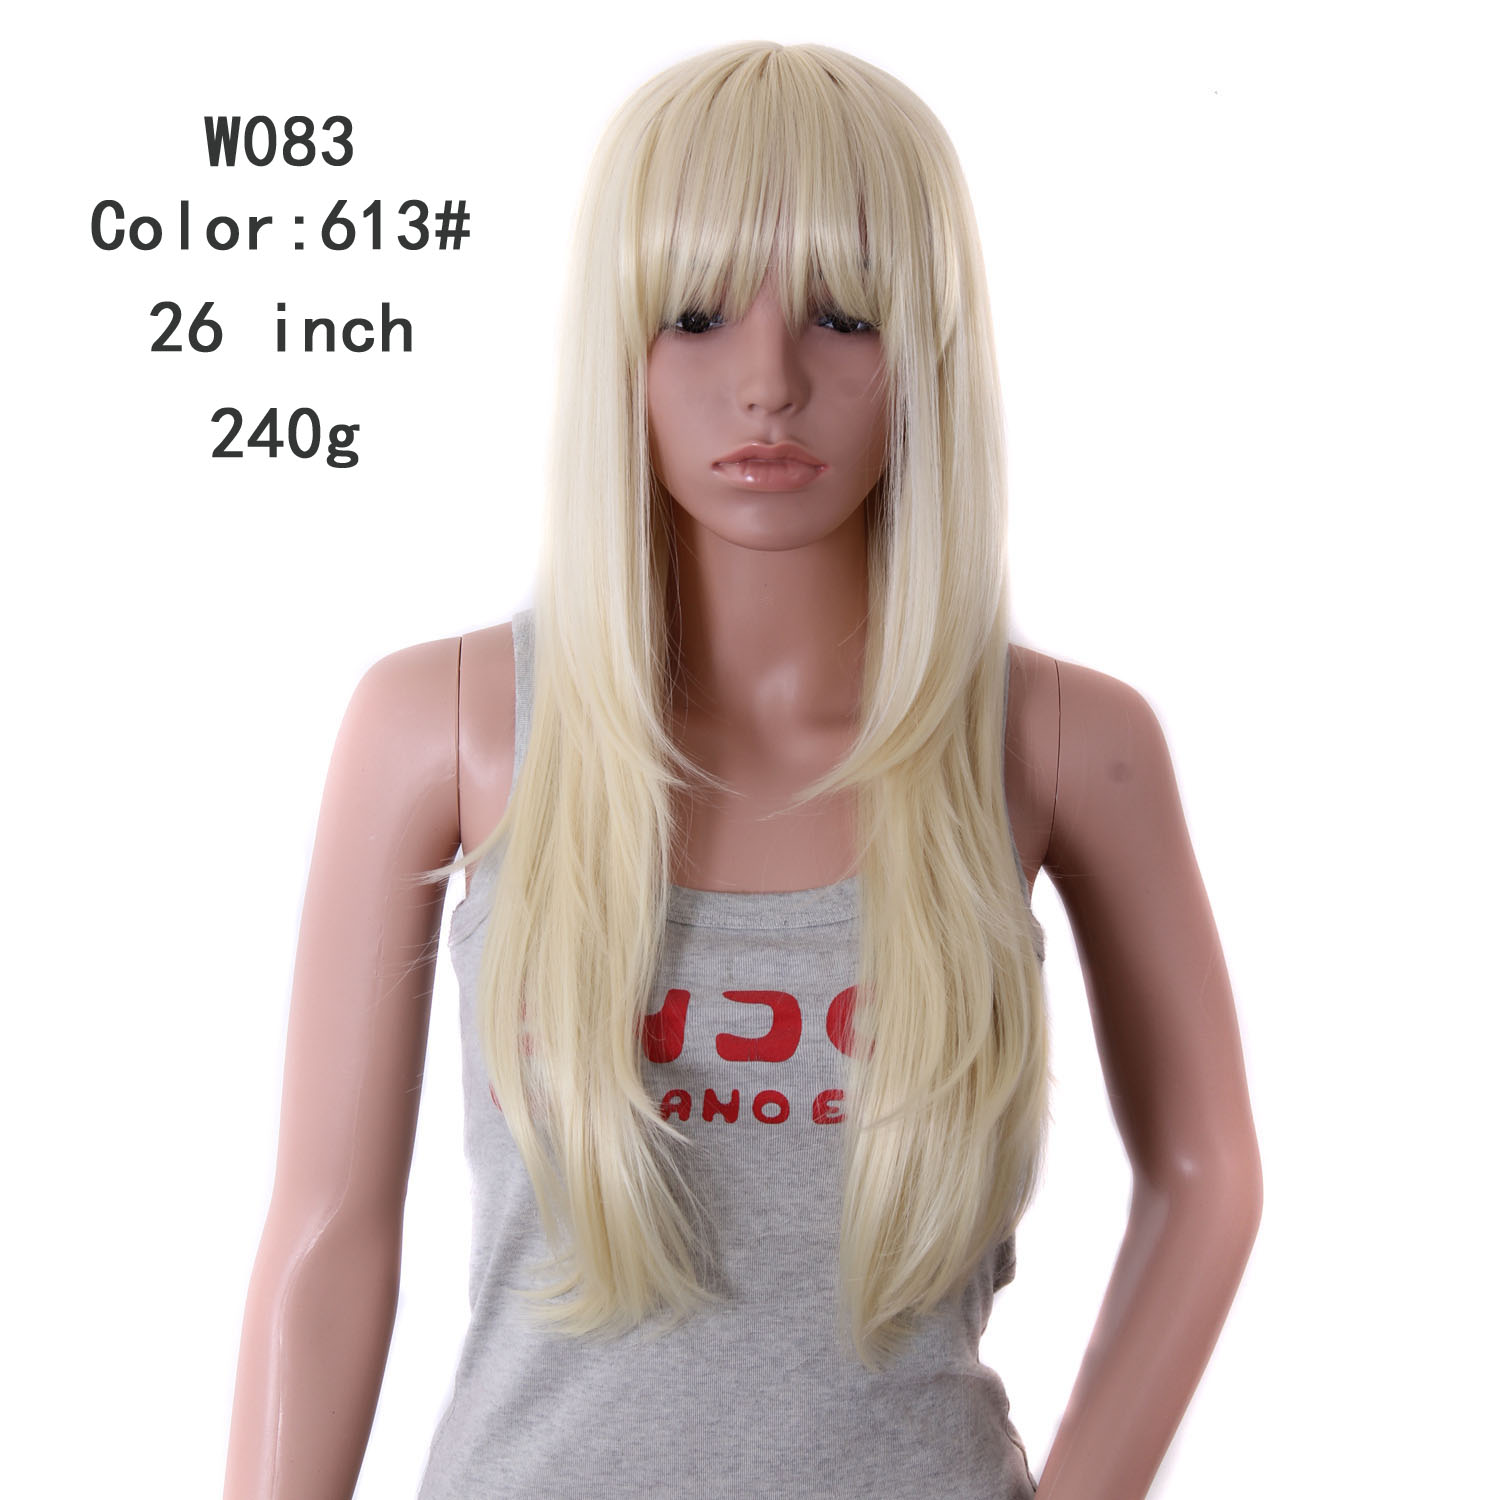 Phenomenal Real Long Blonde Wigs Discount Wig Supply Hairstyle Inspiration Daily Dogsangcom